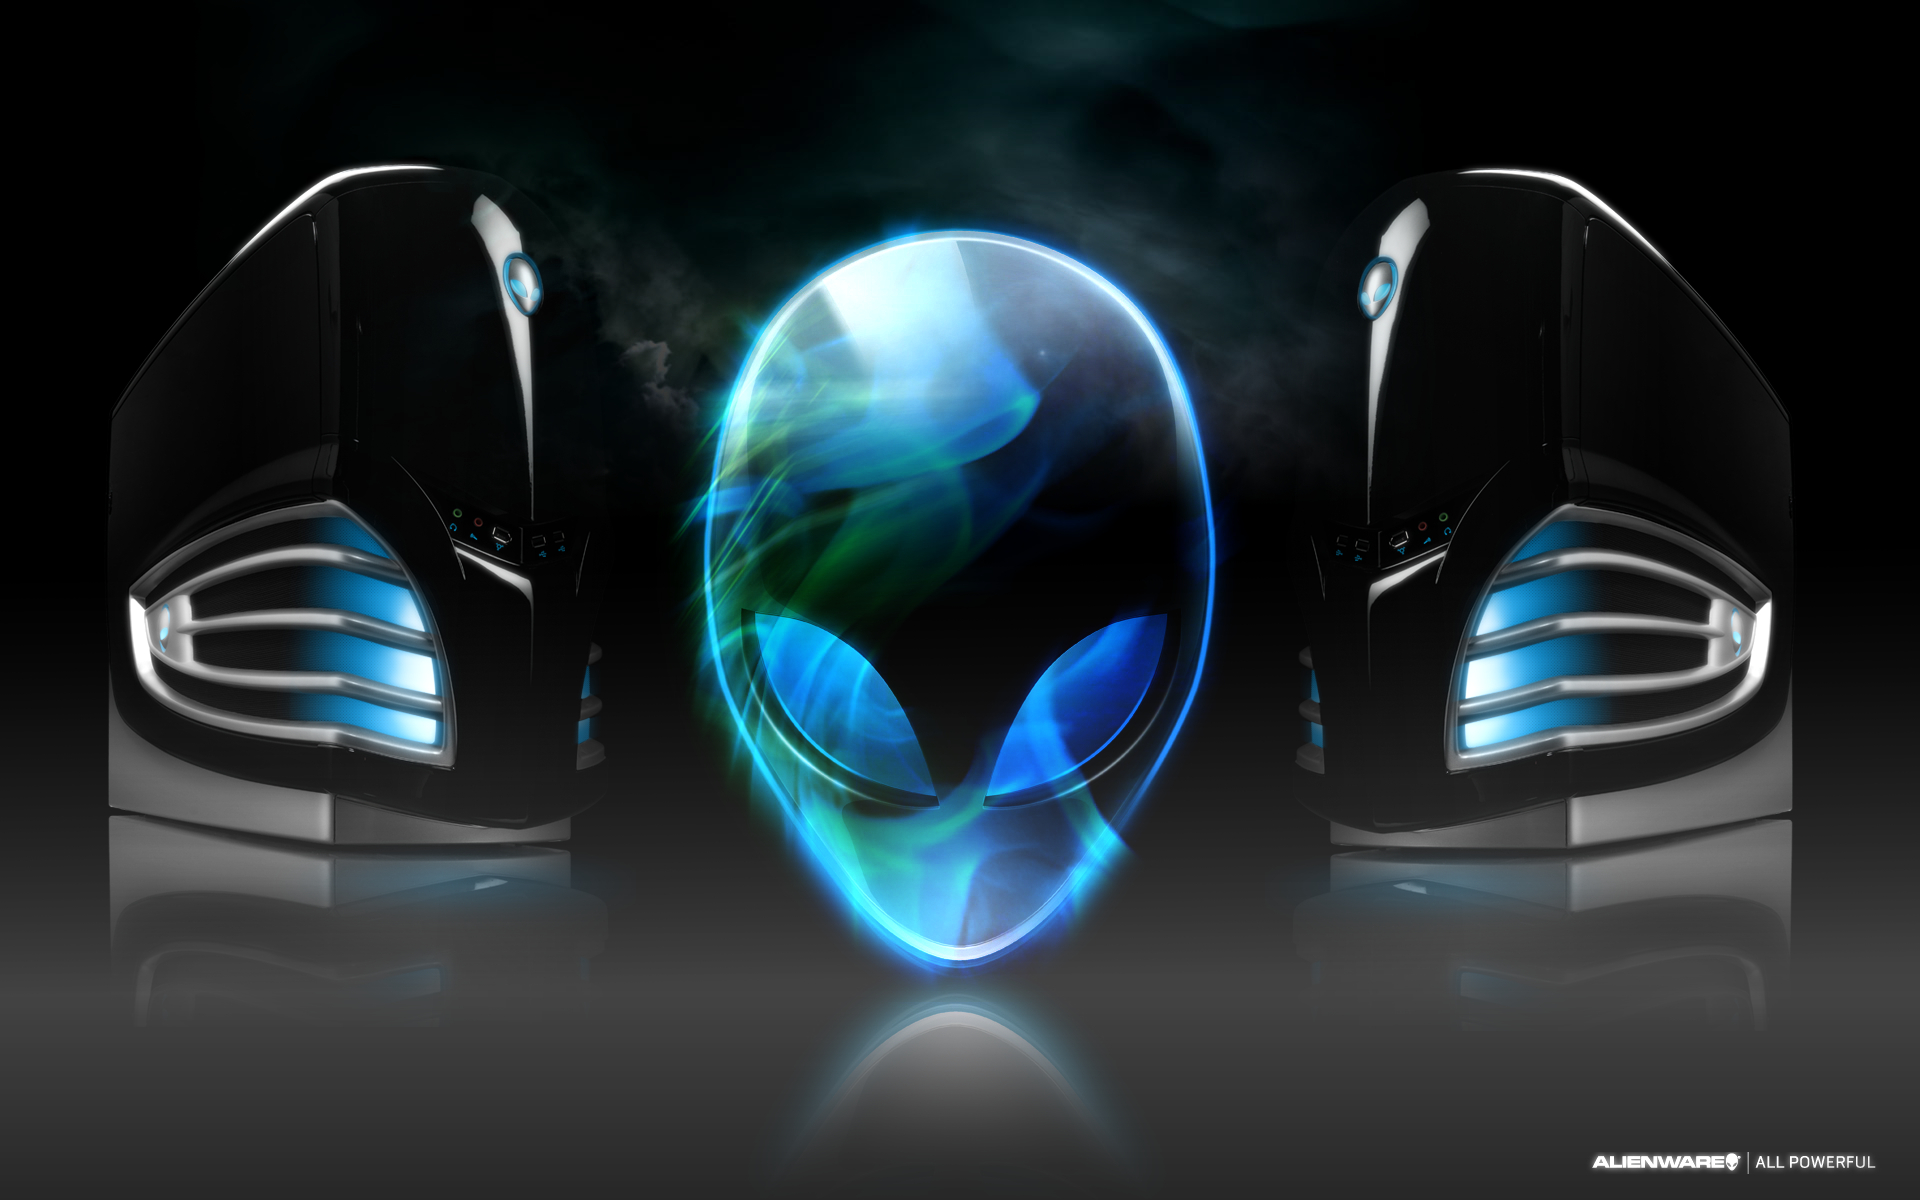 [Wallpaper] HD wallpaper collection vol.1 ALIENWARE_PROMO_WALLPAPER_by_rg_promise